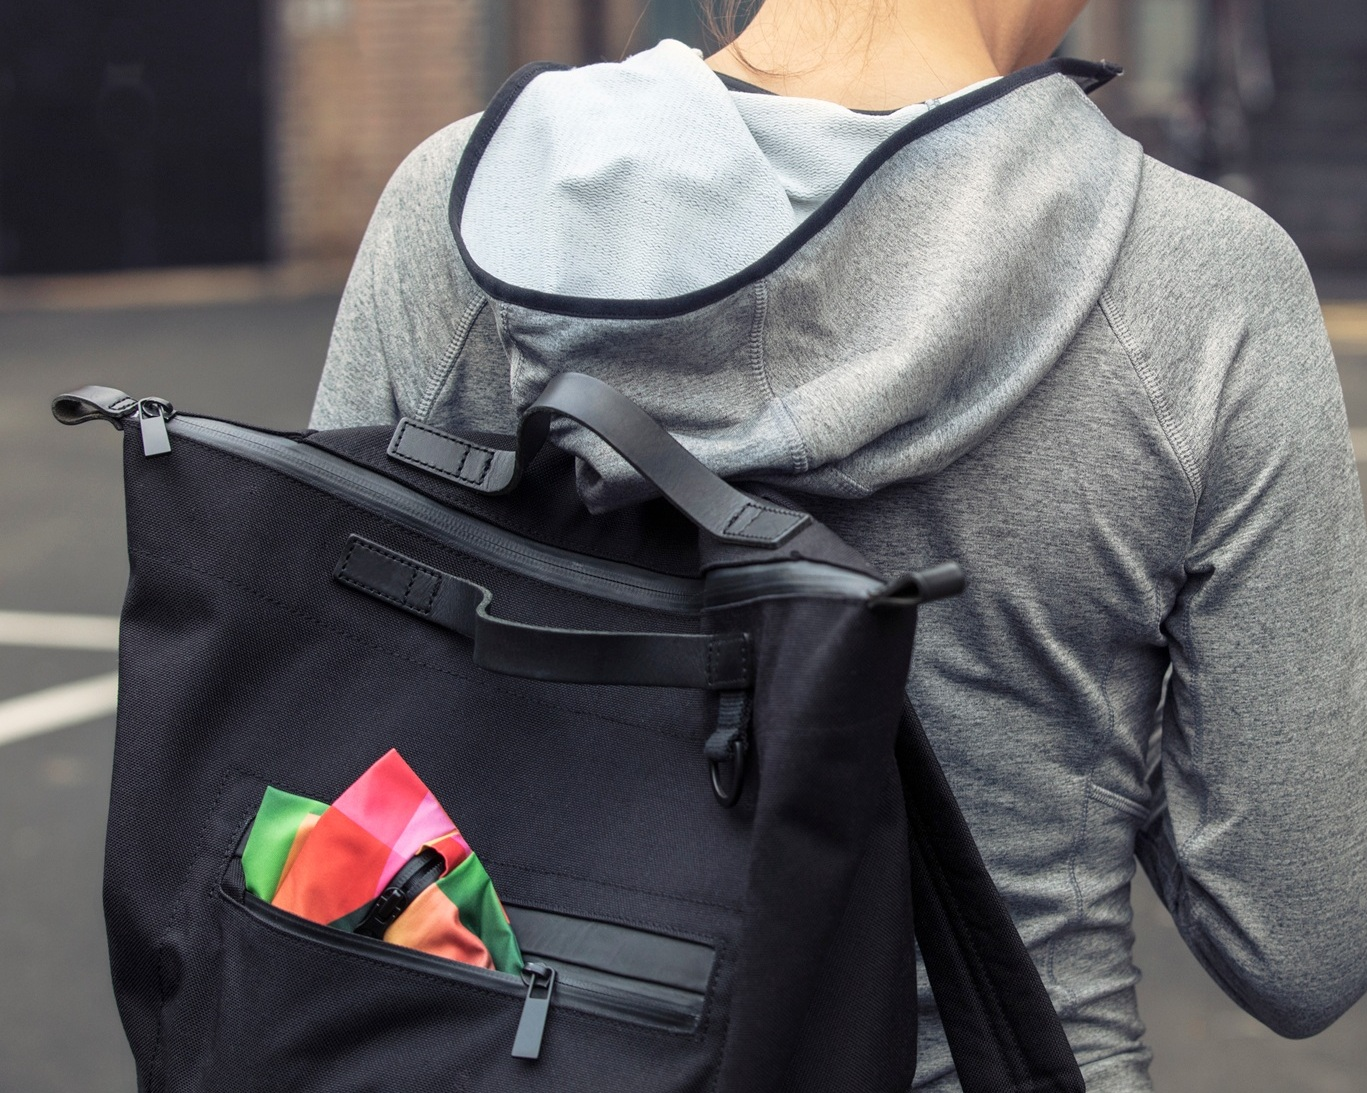 The Weight - With a weight of only 70 grams our bag packs away nicely. With its dimensions of 38 x 32 cm it easily holds all your gym essentials.